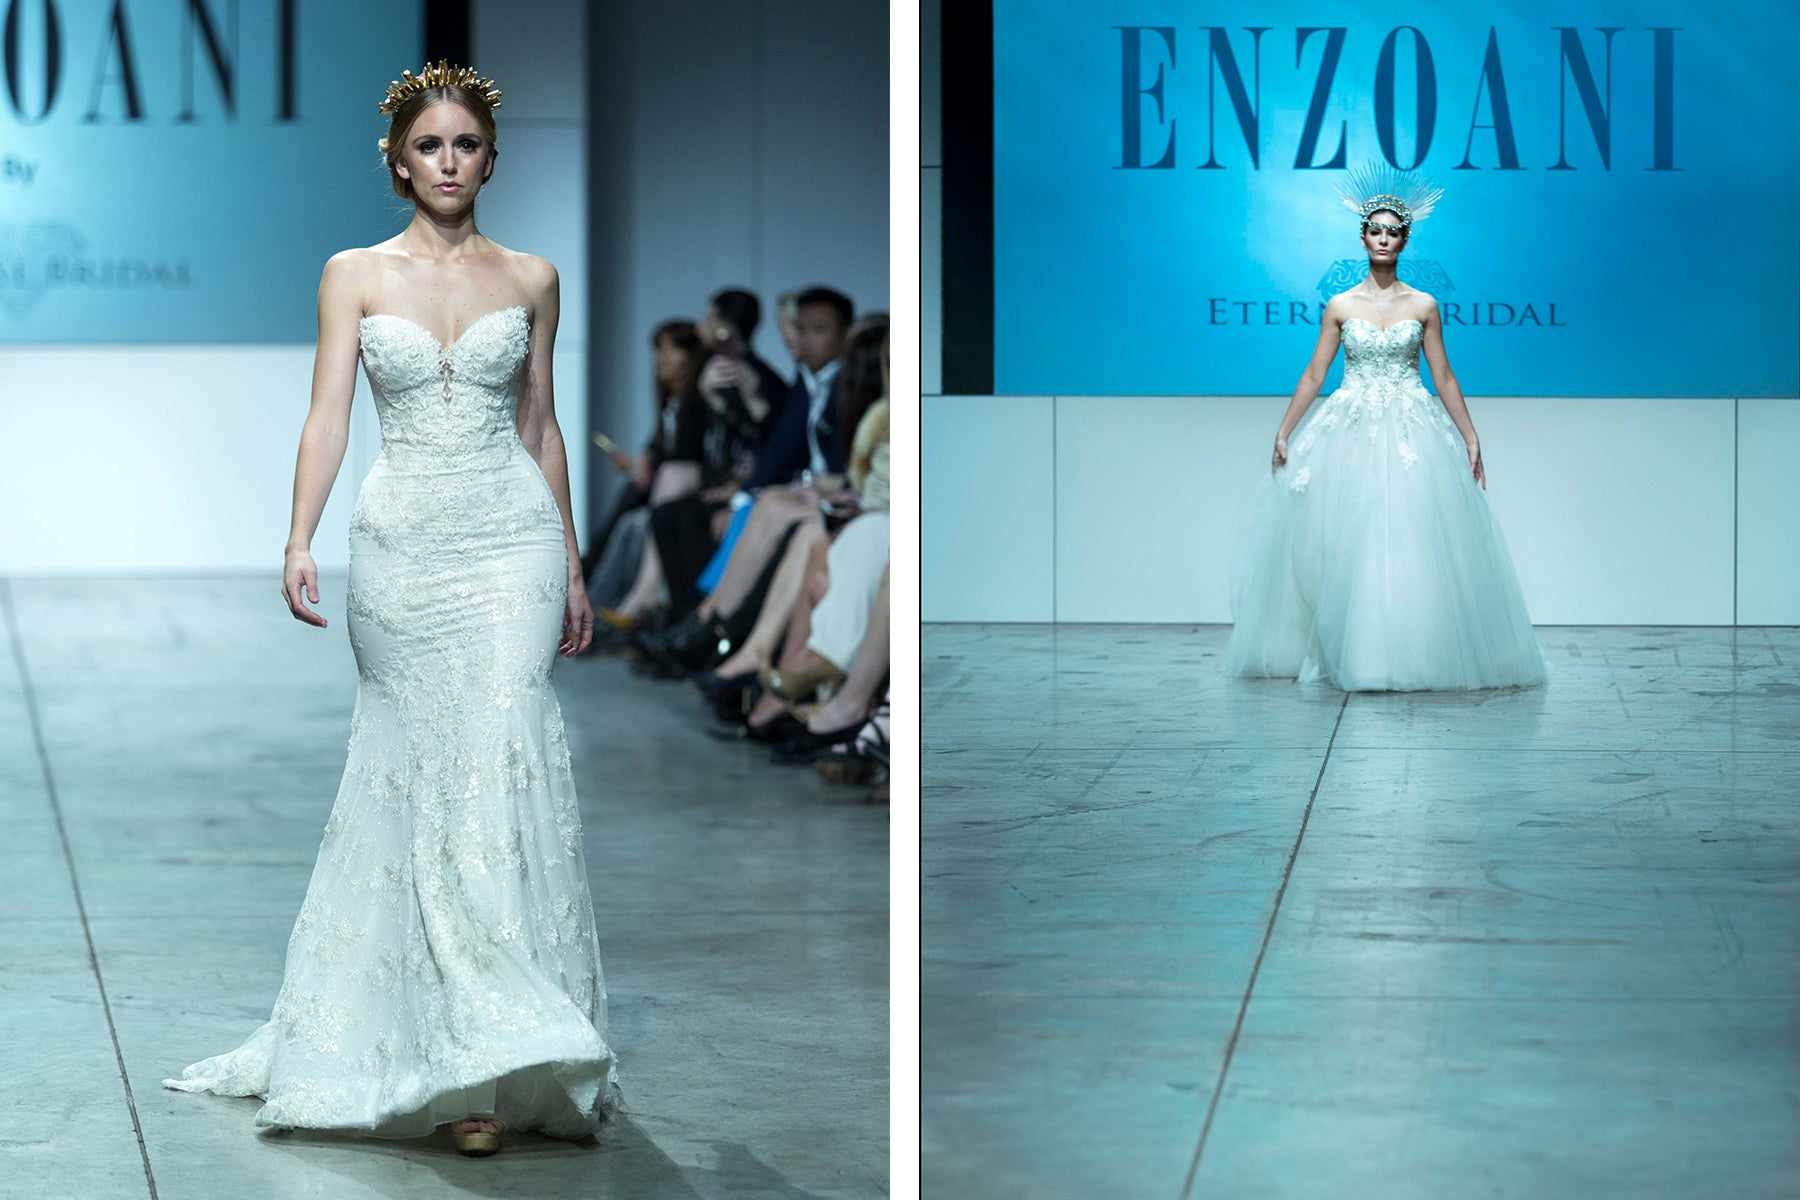 ABFW_Eternal_Bridal_Enzoani_1